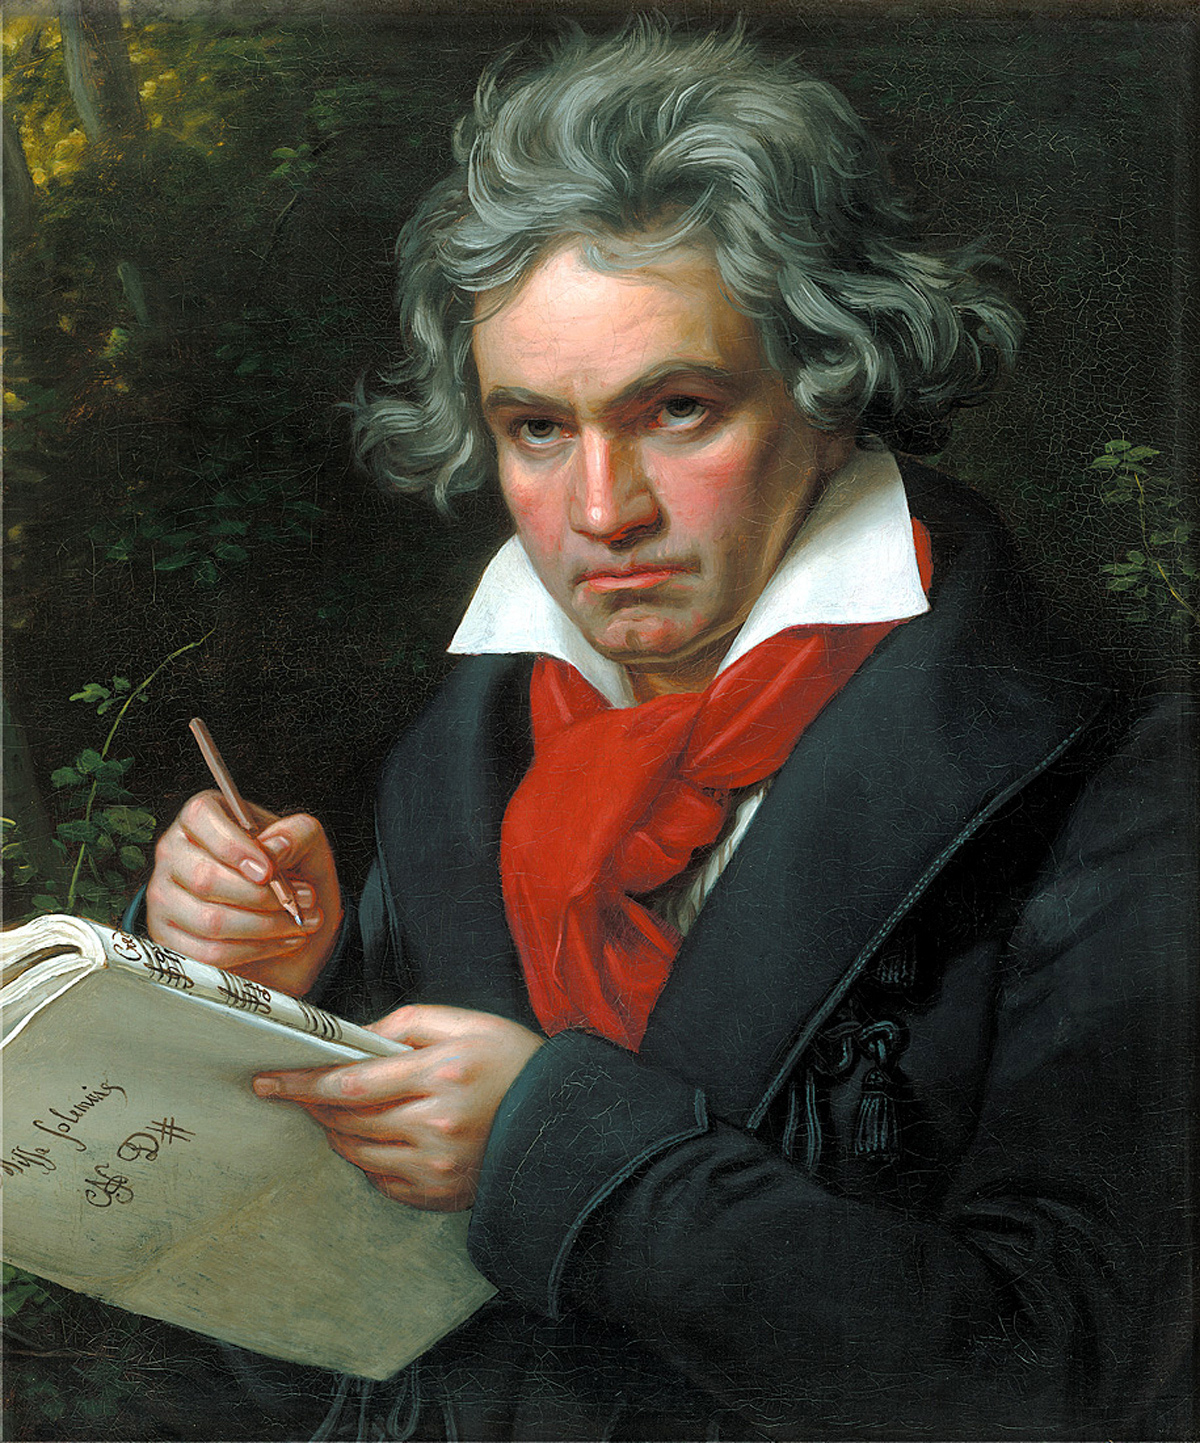 https://upload.wikimedia.org/wikipedia/commons/6/6f/Beethoven.jpg